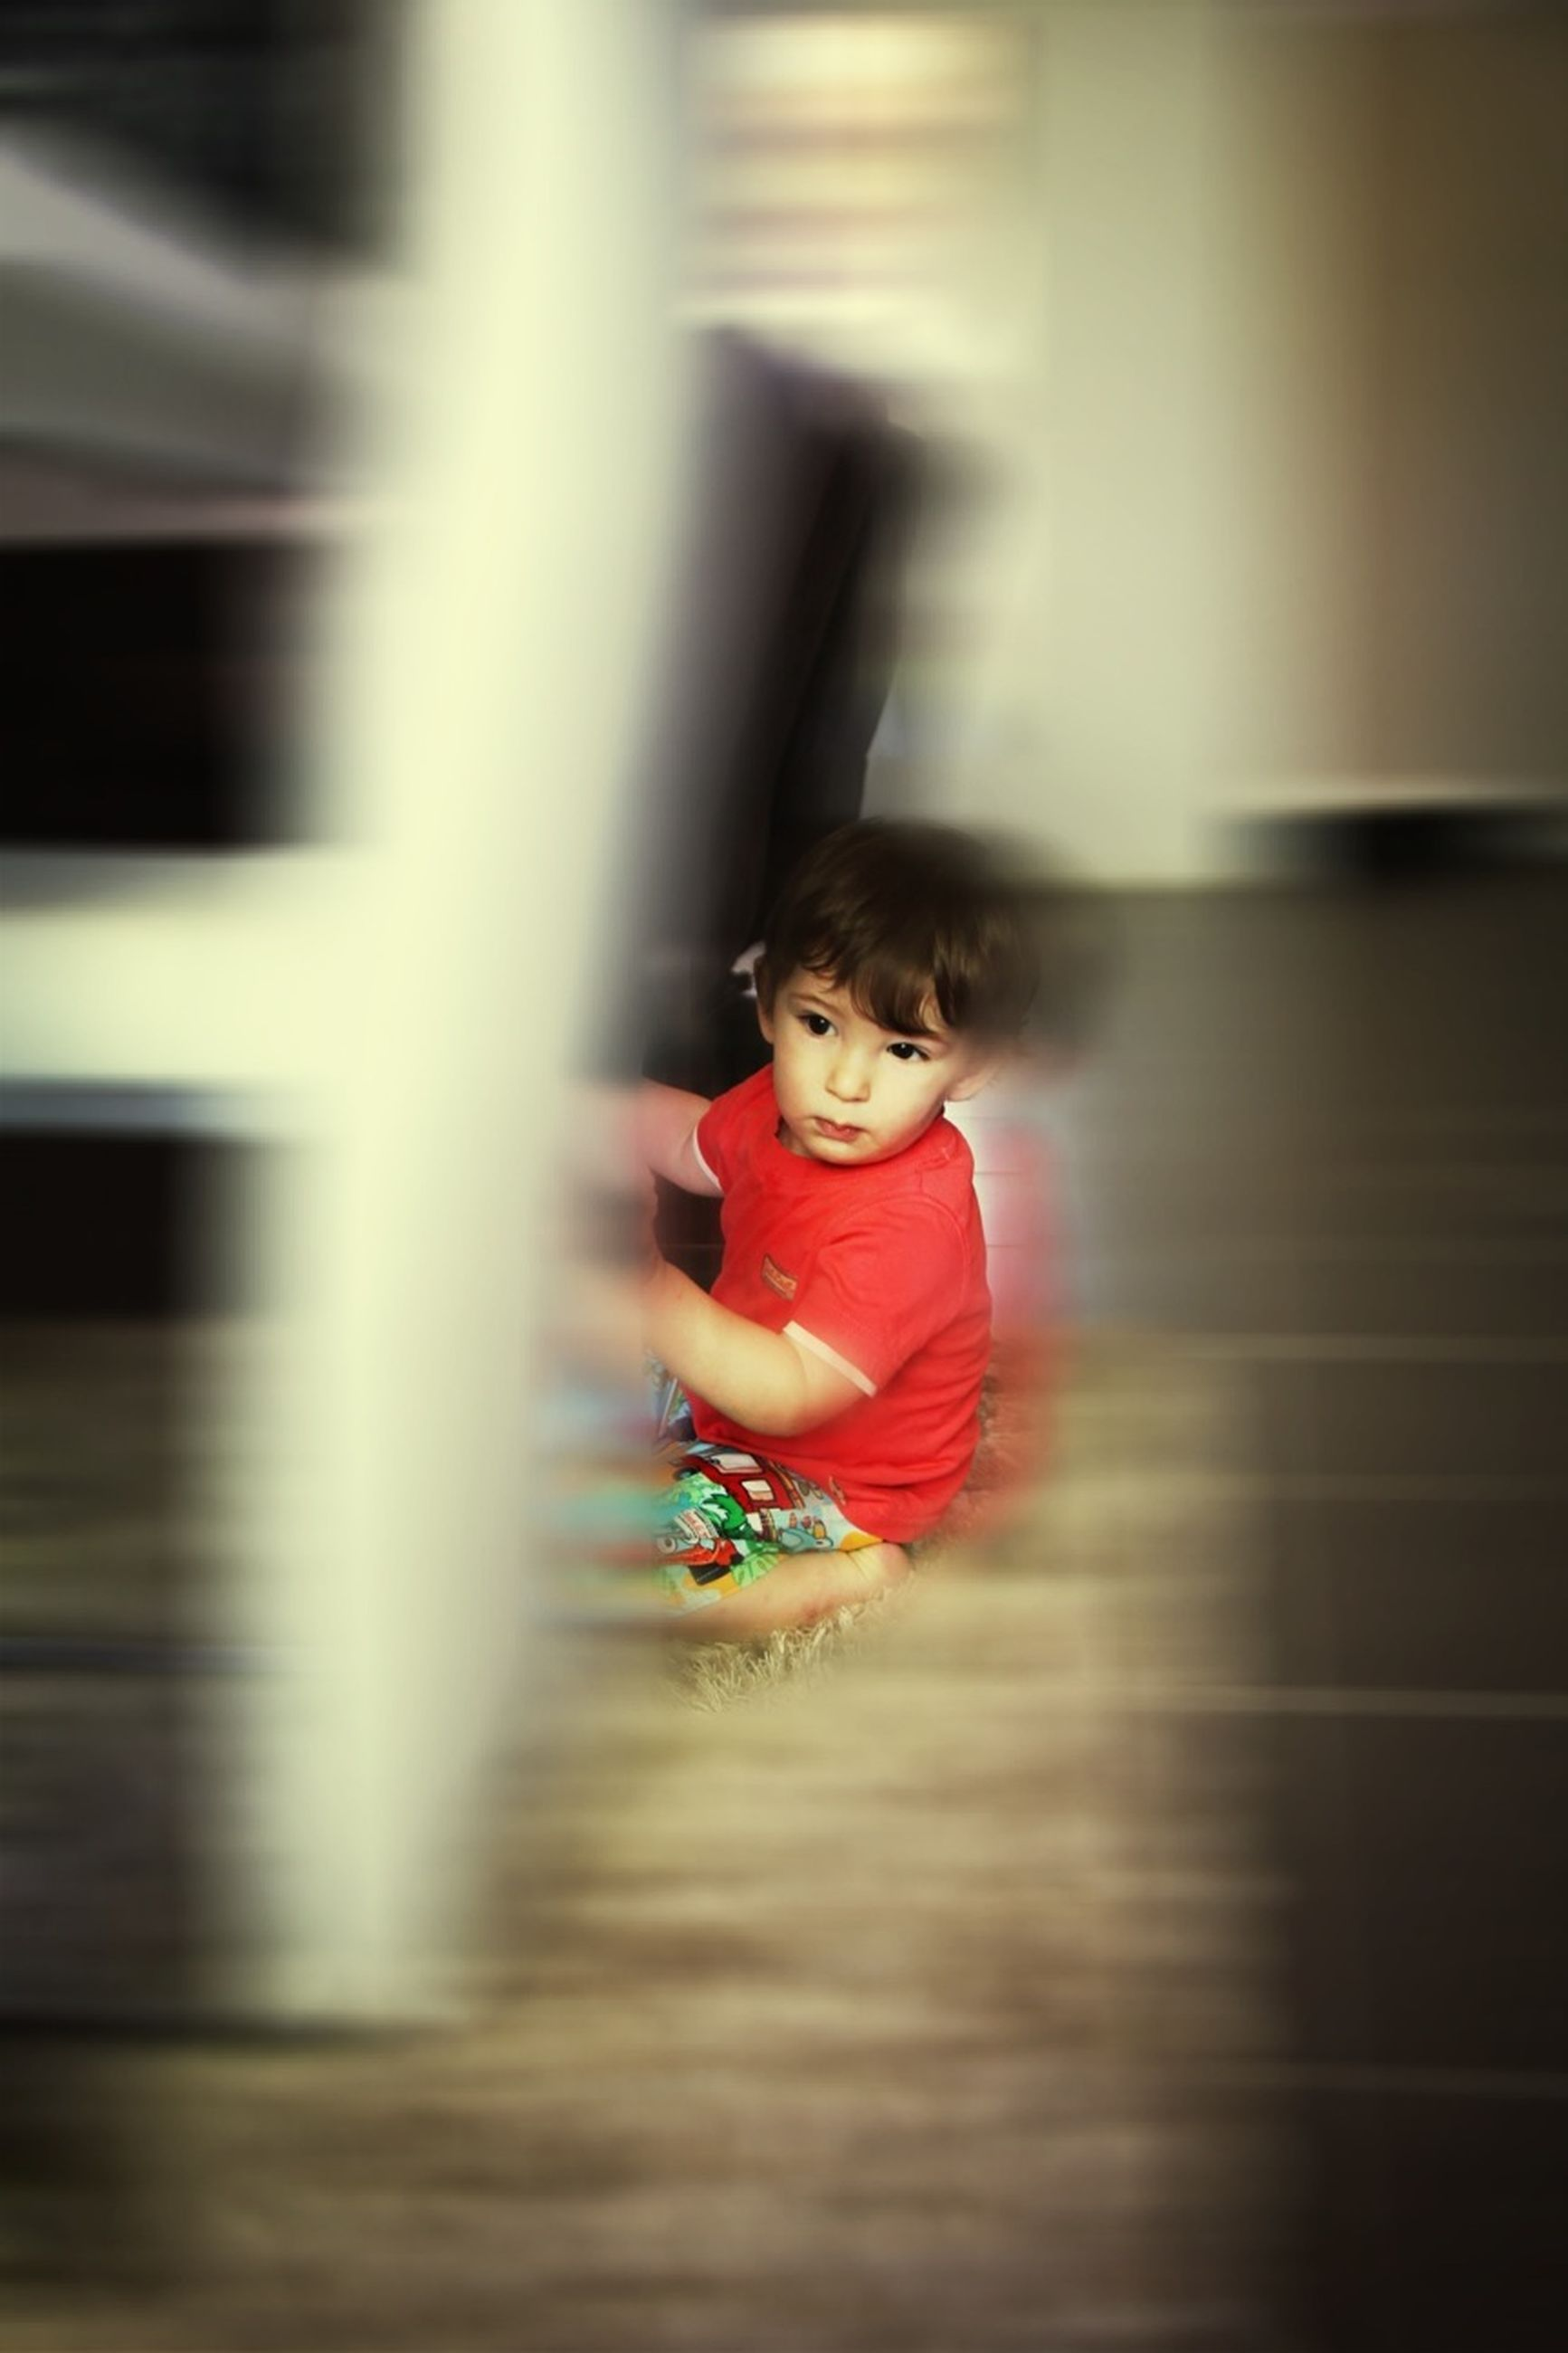 childhood, elementary age, lifestyles, person, boys, leisure activity, cute, girls, innocence, indoors, full length, casual clothing, playing, playful, happiness, portrait, fun, looking at camera